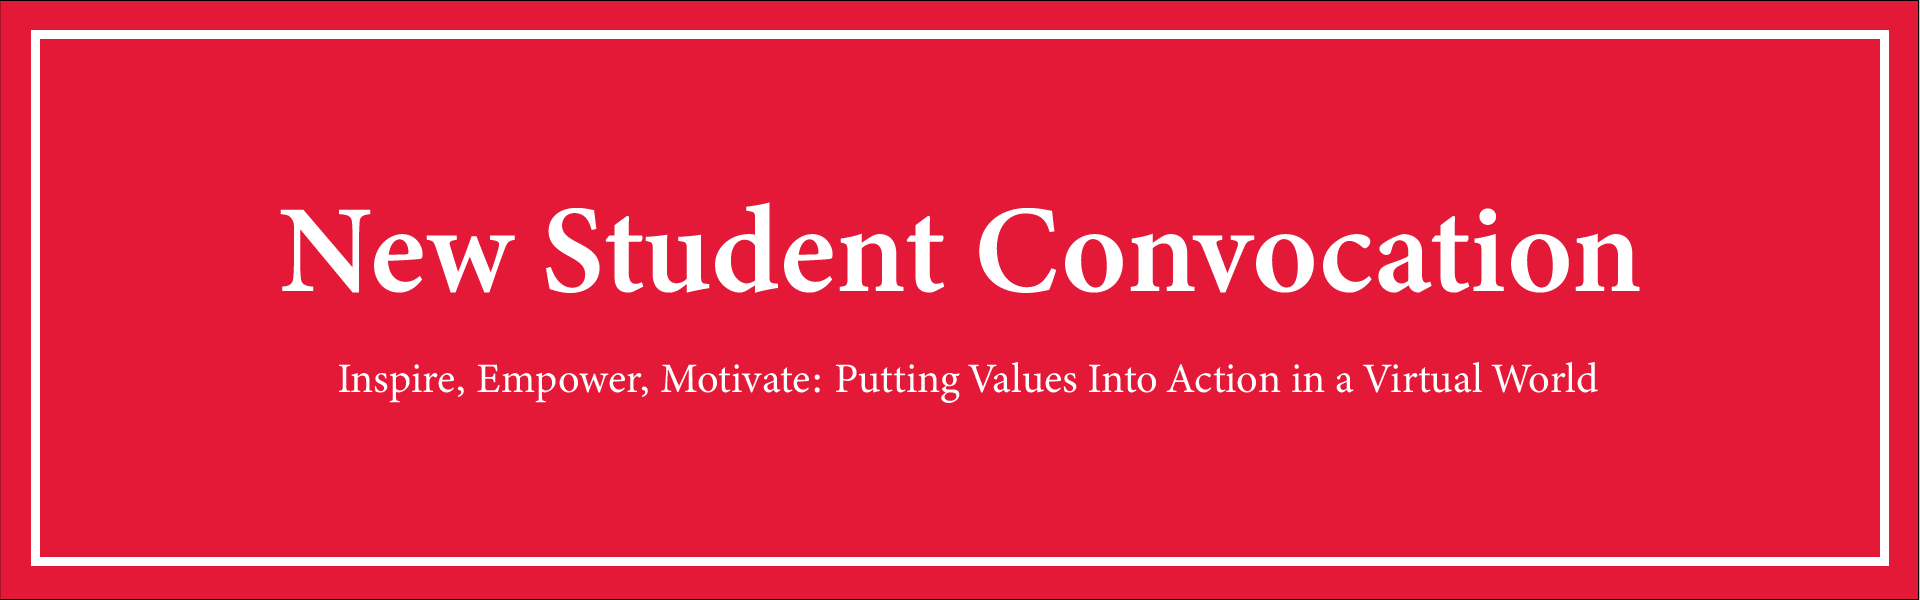 New Student Convocation Banner